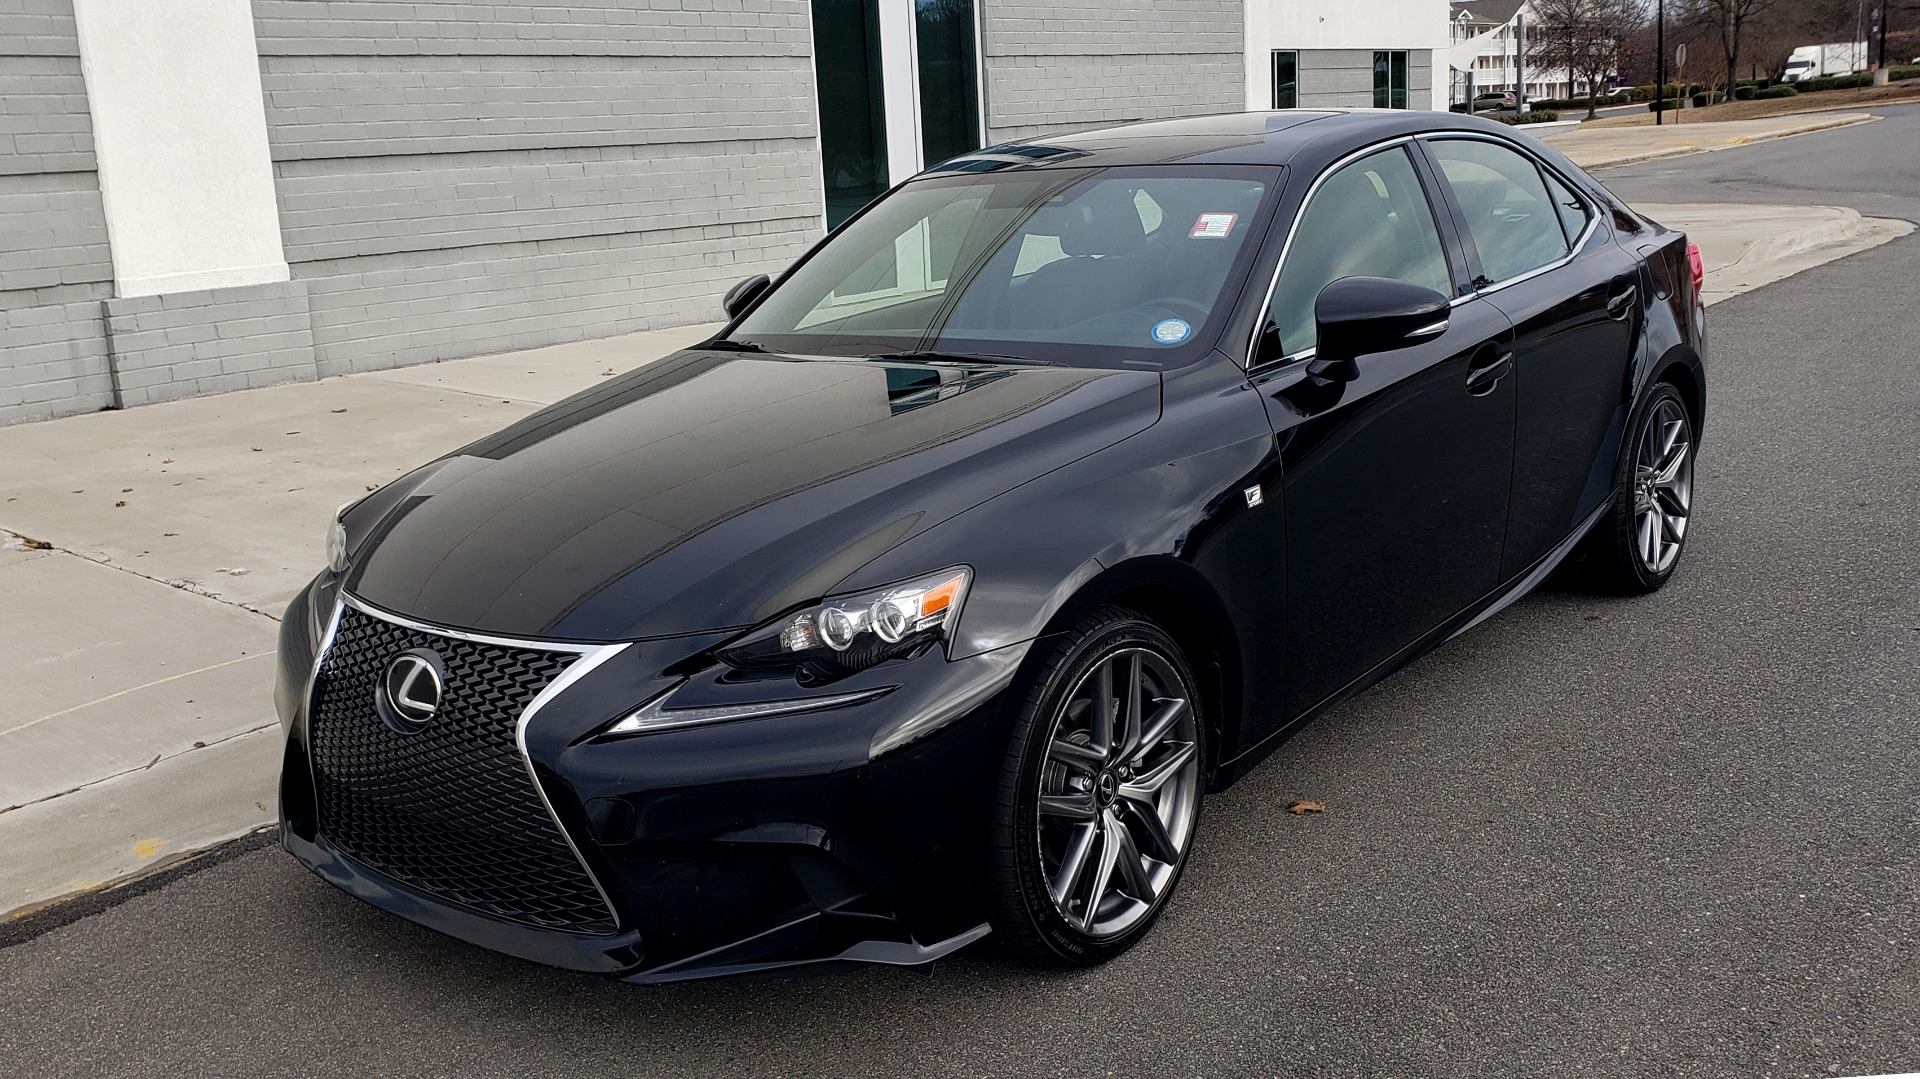 Used 2015 Lexus IS 250 F-SPORT / BLIND SPOT MON / SUNROOF / REARVIEW for sale Sold at Formula Imports in Charlotte NC 28227 1